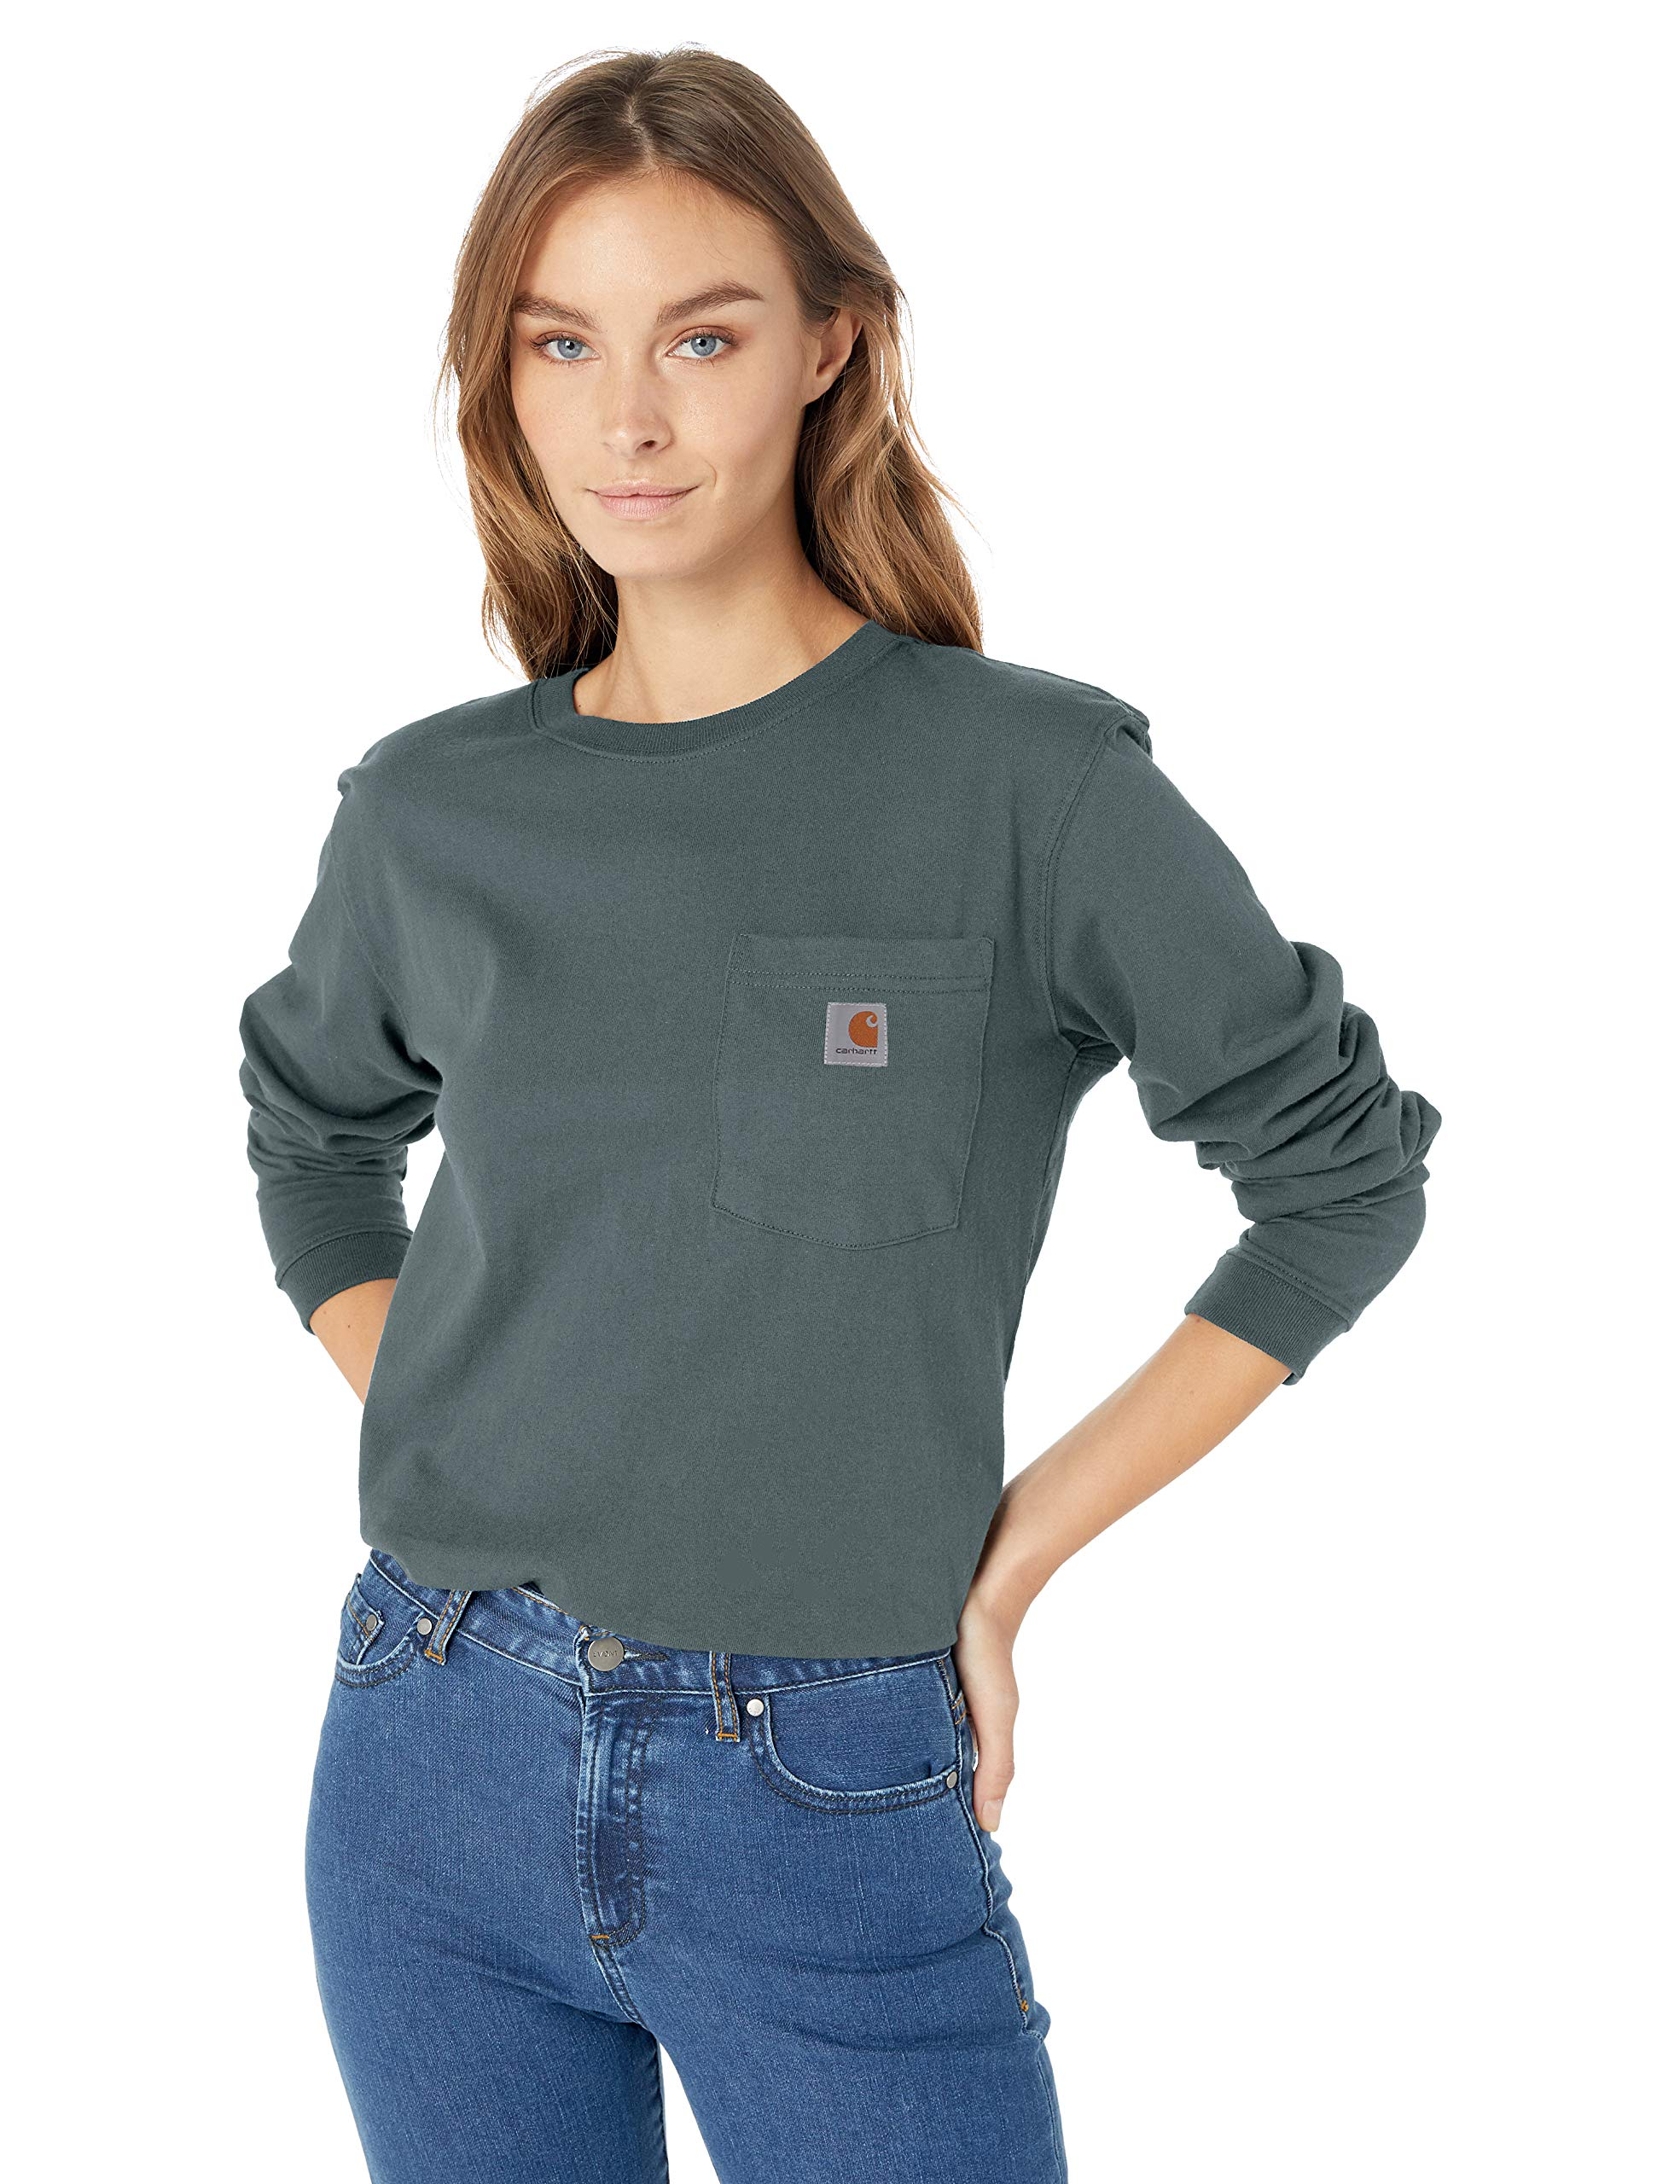 Carhartt Women's Wk126 Workwear Pocket Long Sleeve T Shirt, sea Glass, Medium